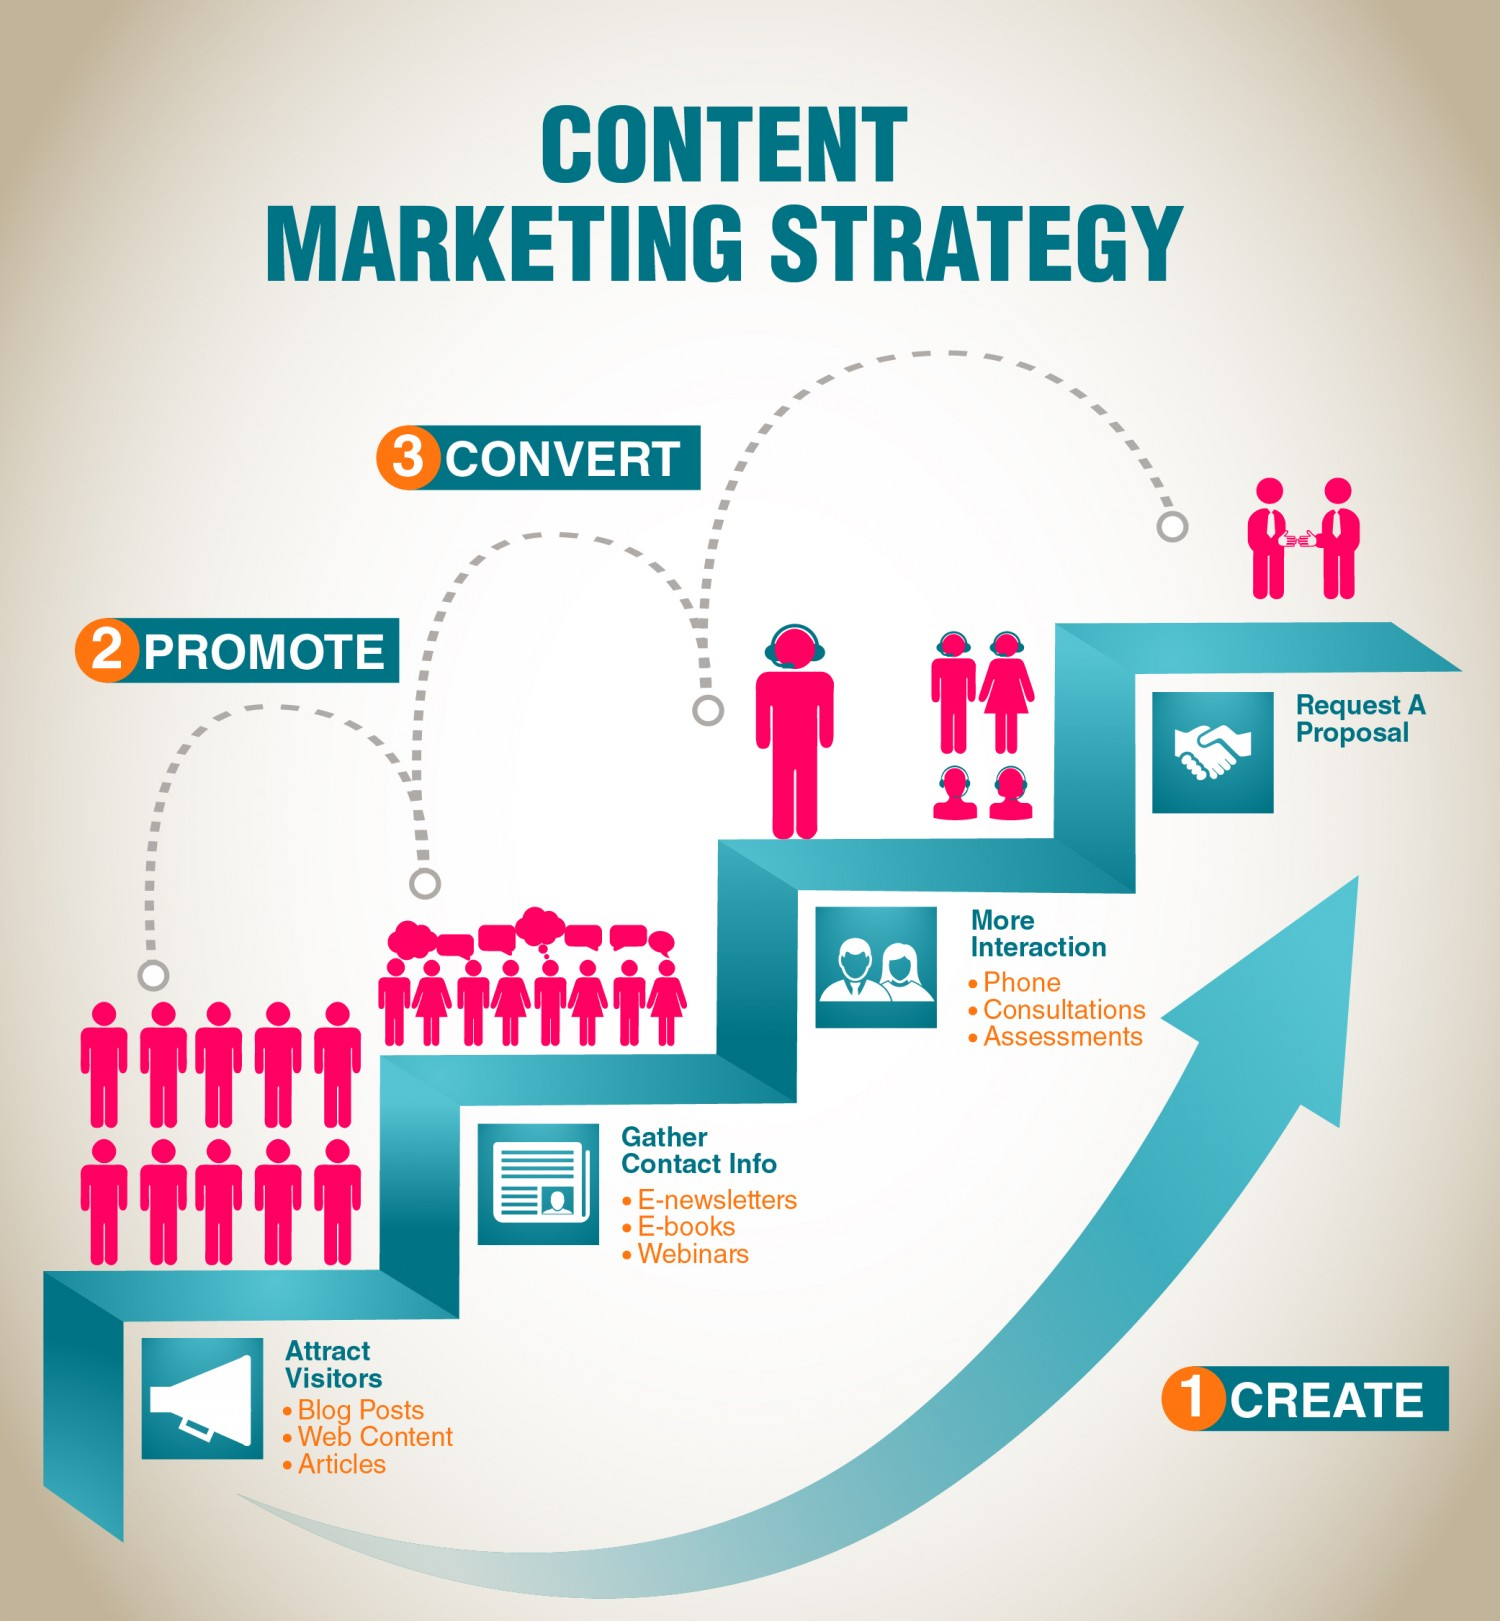 16-strategy-of-content-marketing_537c26d577fa3_w1500